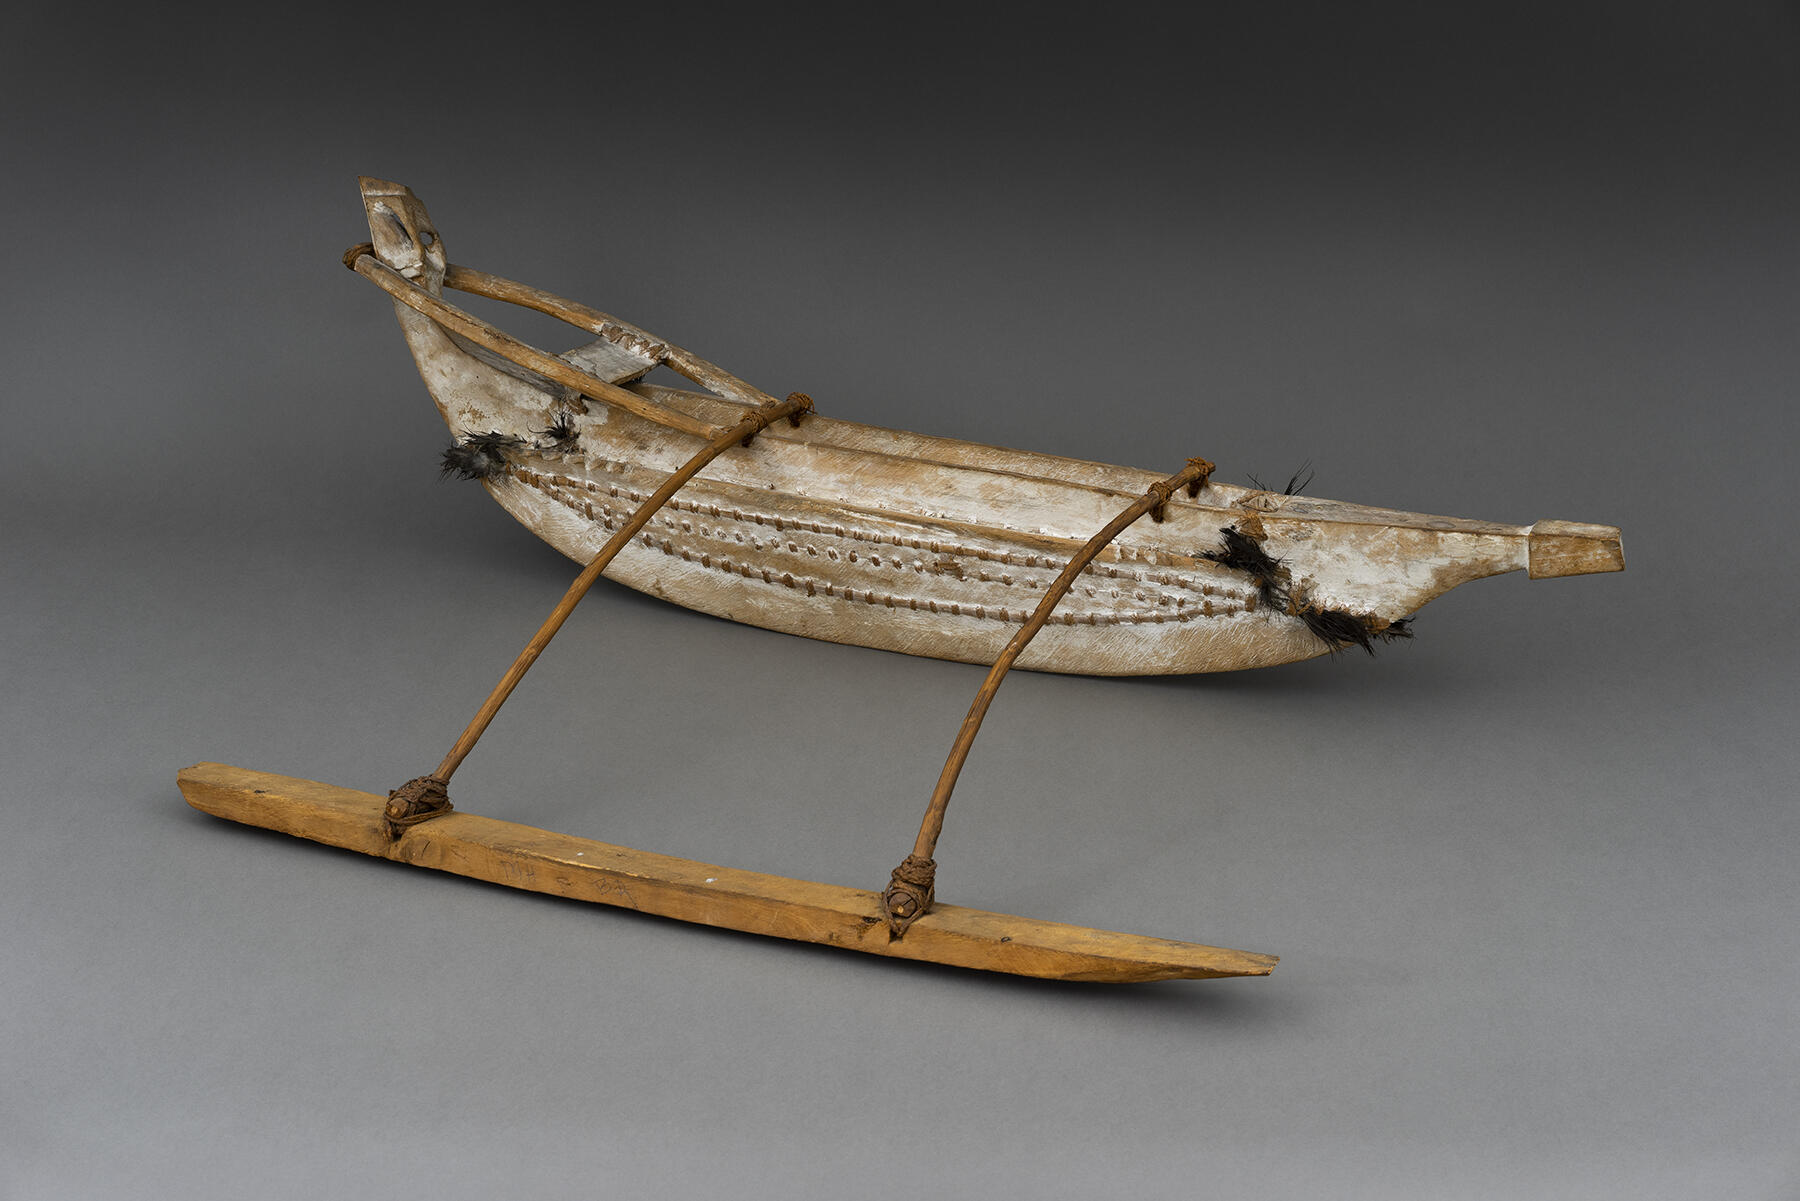 Model of a outrigger canoe.